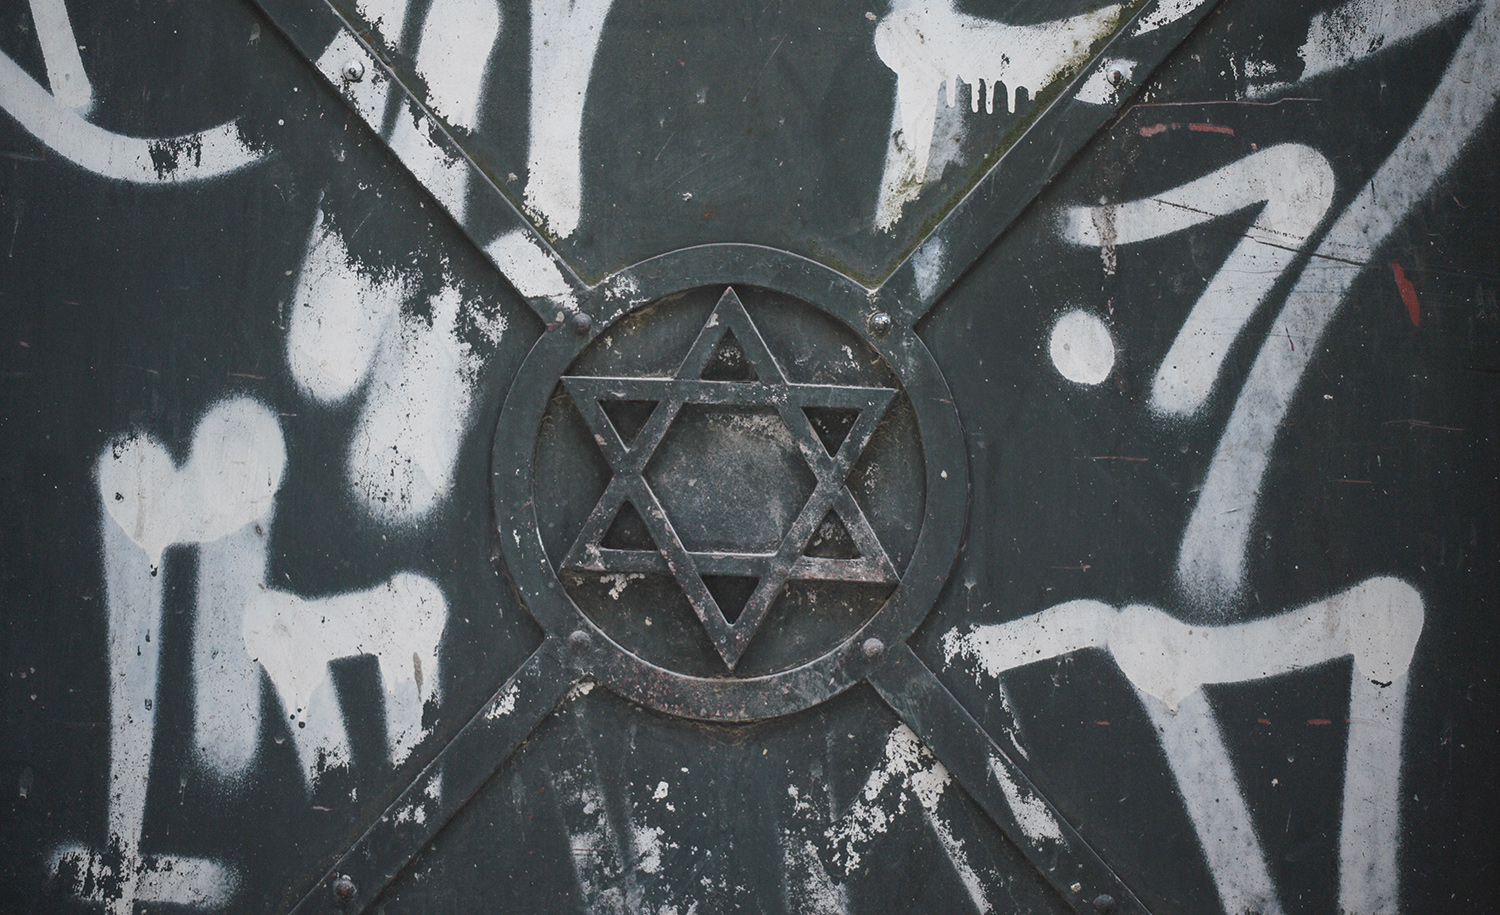 The Star of David surrounded by graffiti on an iron door in Krakow on April 8, 2020. Artur Widak/NurPhoto via Getty Images.